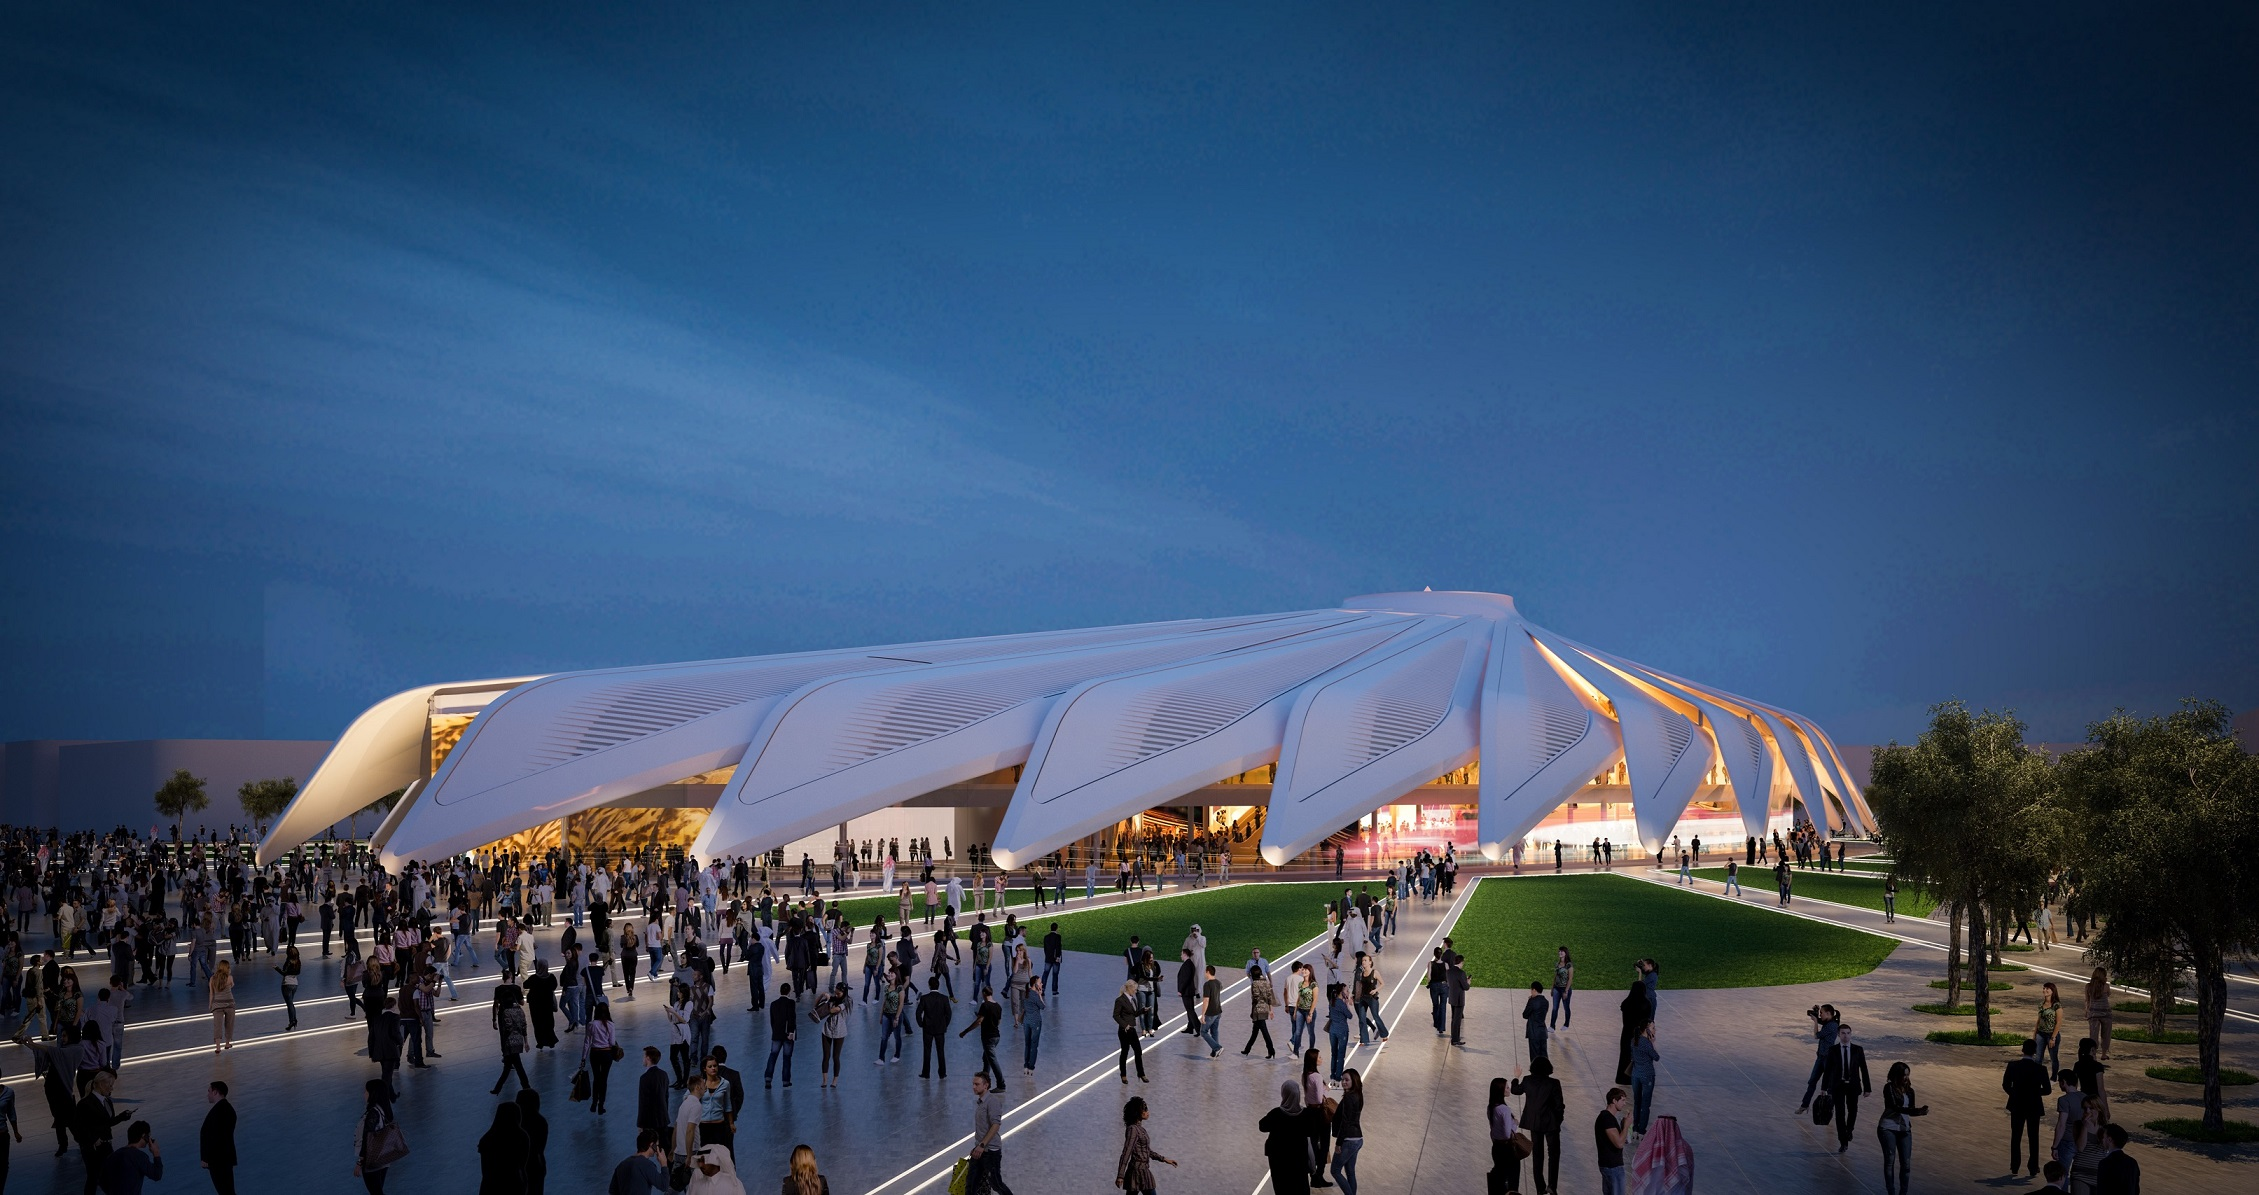 Arabtec Construction Awarded Main Contract to  Build UAE Pavilion at Expo 2020 Dubai